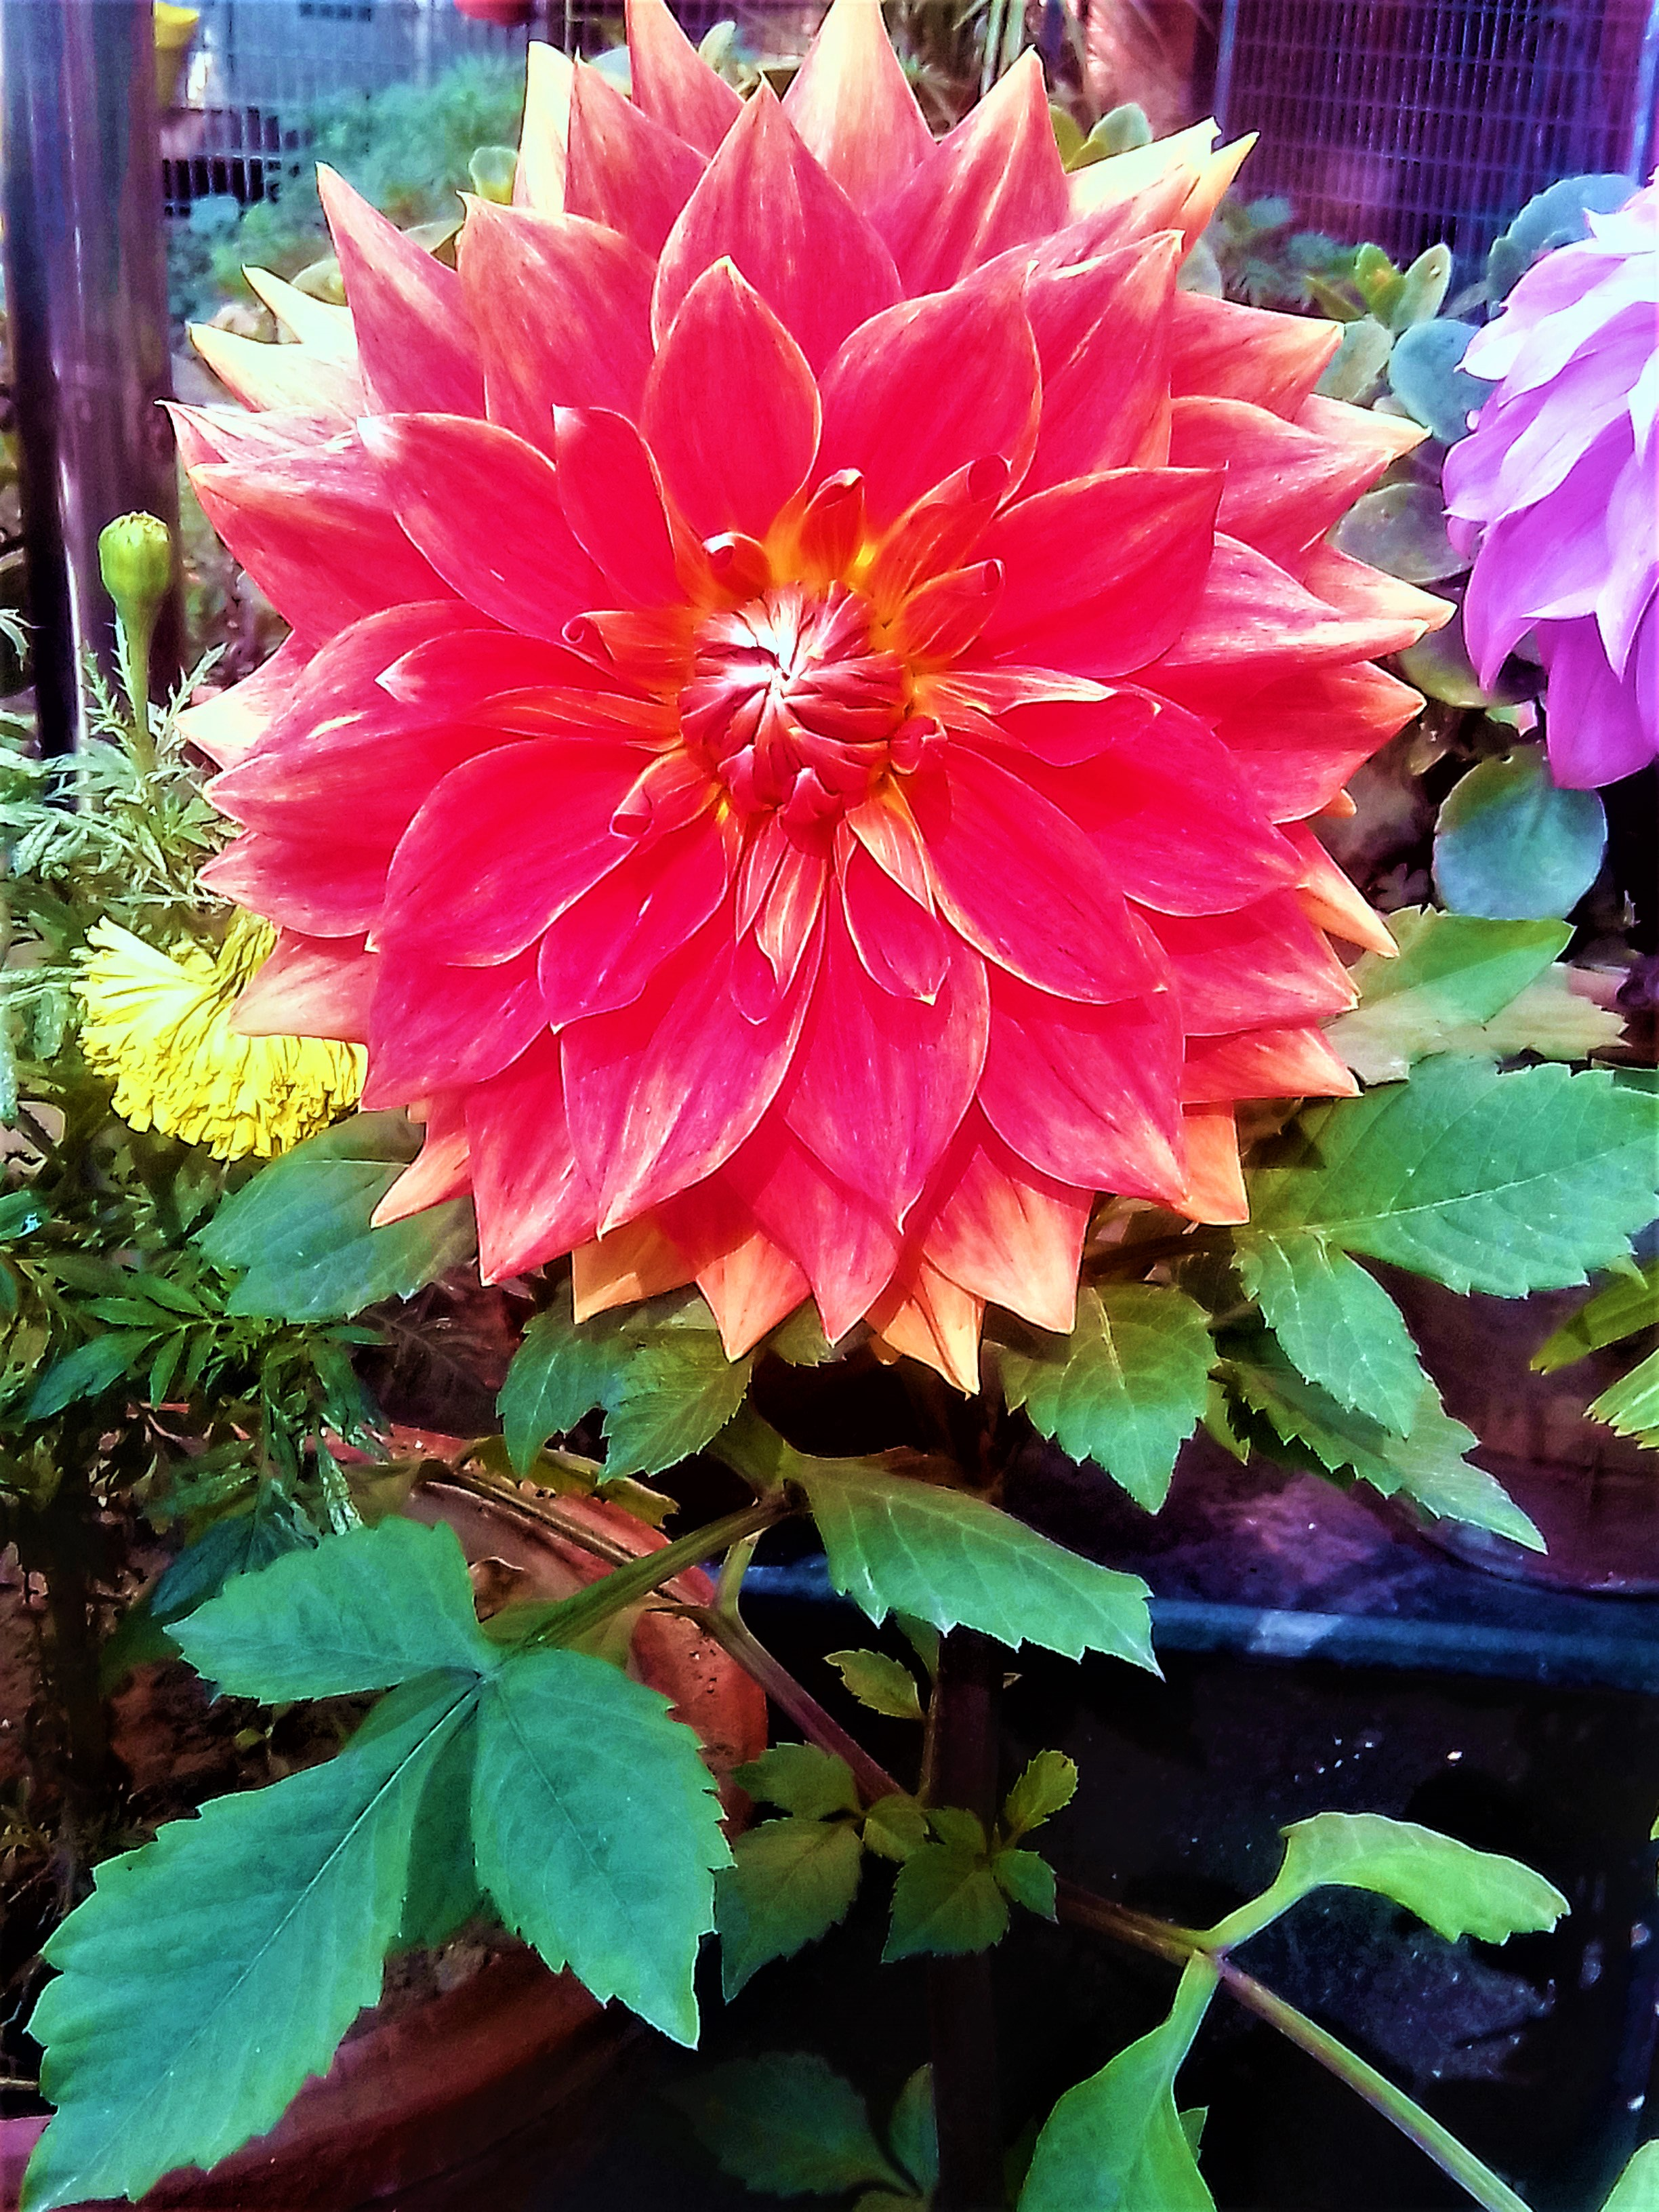 The Red dahlia flowers information